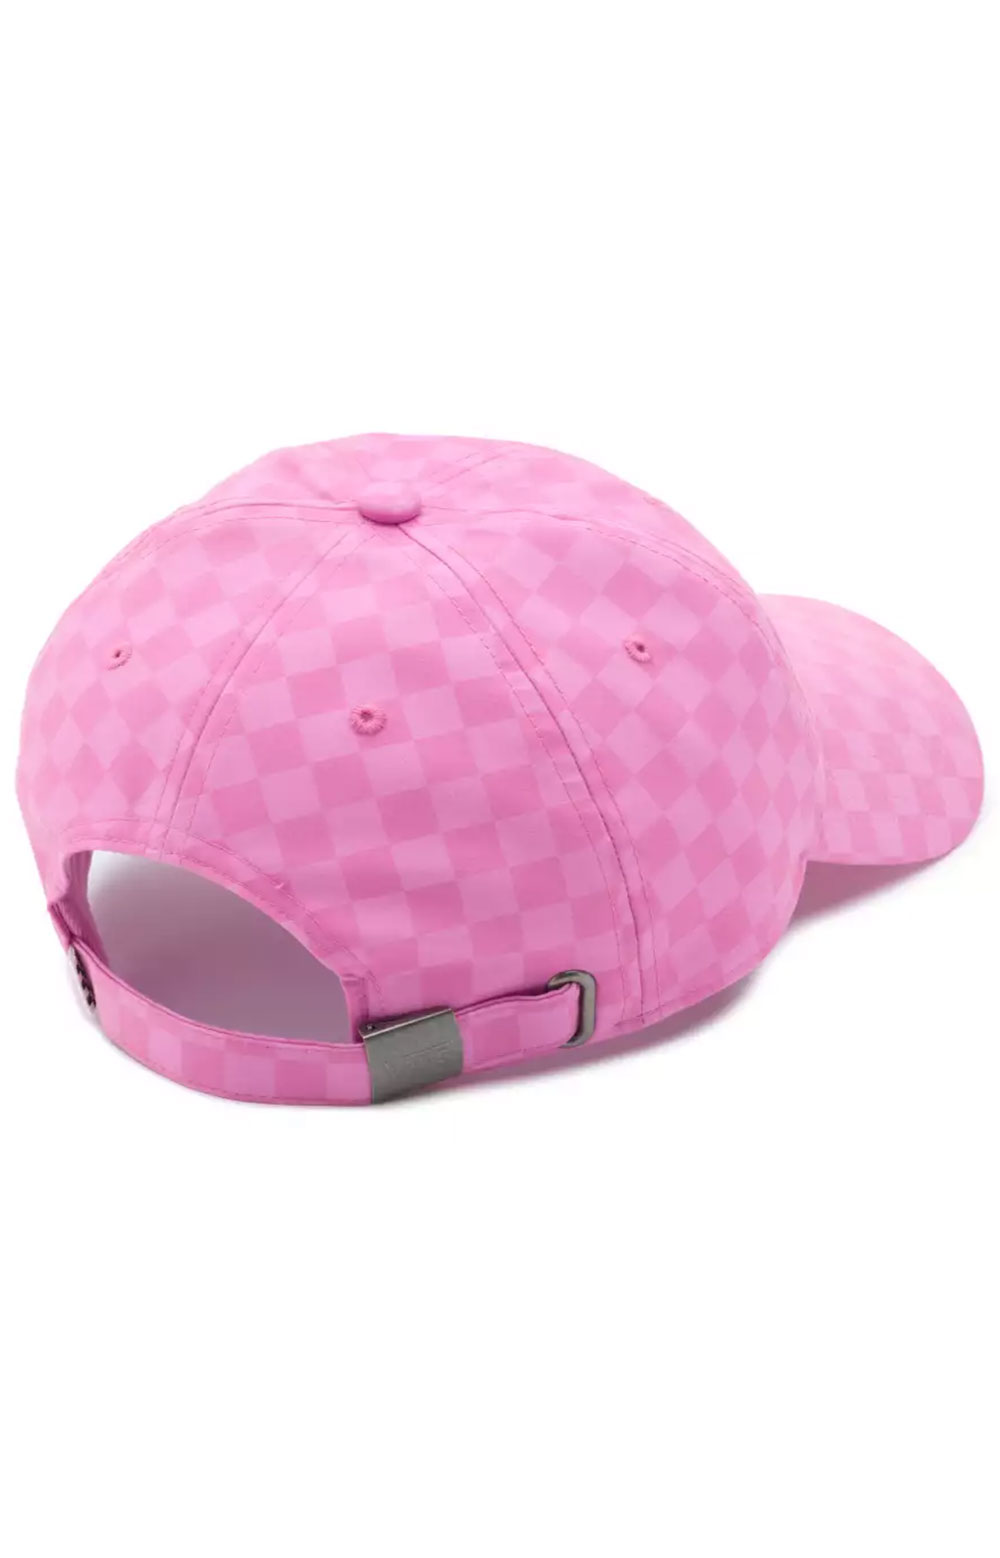 Court Side Printed Dad Hat - Fuchsia Pink Check 2